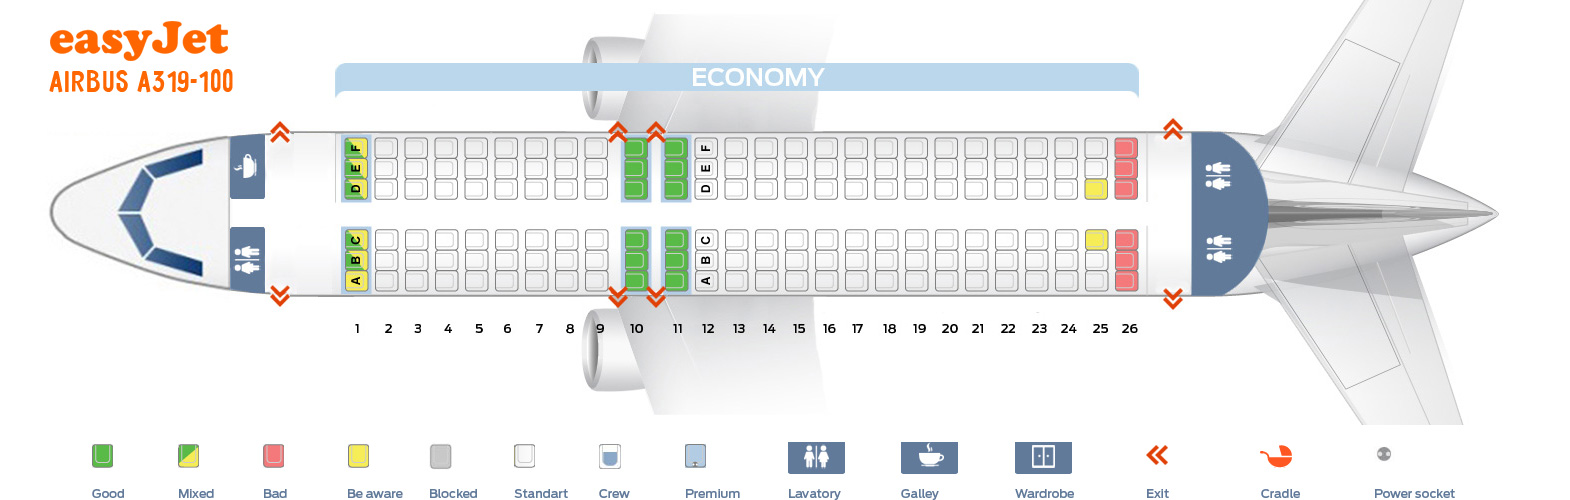 Seat Map Airbus A319-100 EasyJet